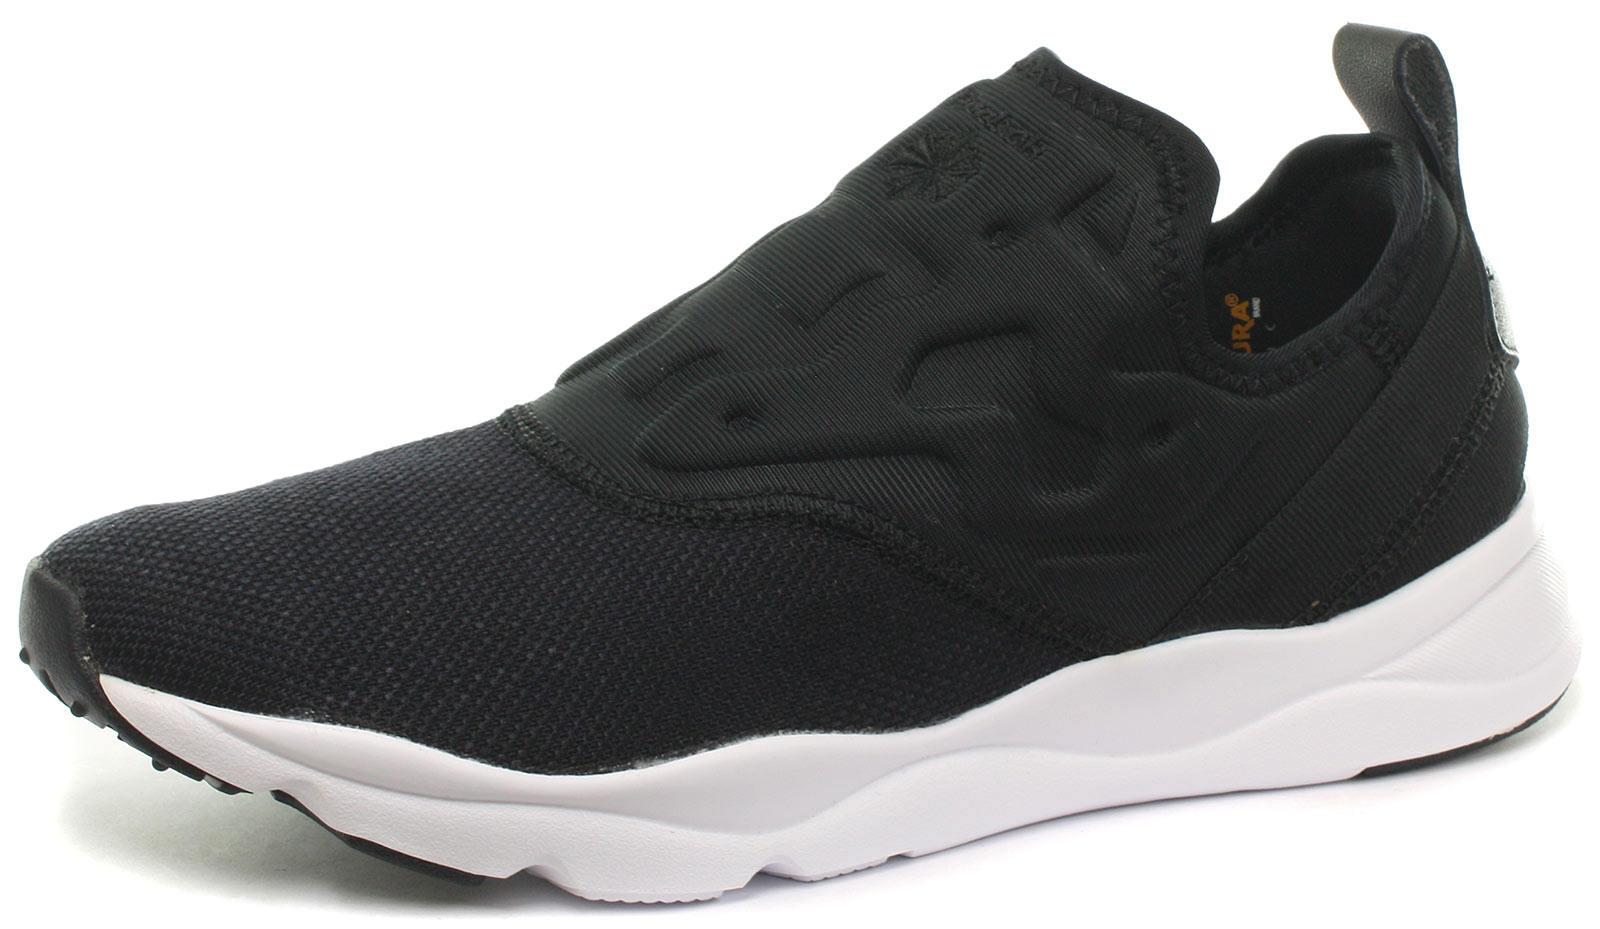 2a1eb9d8b51d Image is loading Reebok-Classic-Furylite-Slip-Contemporary-Blk-Womens- Trainers-